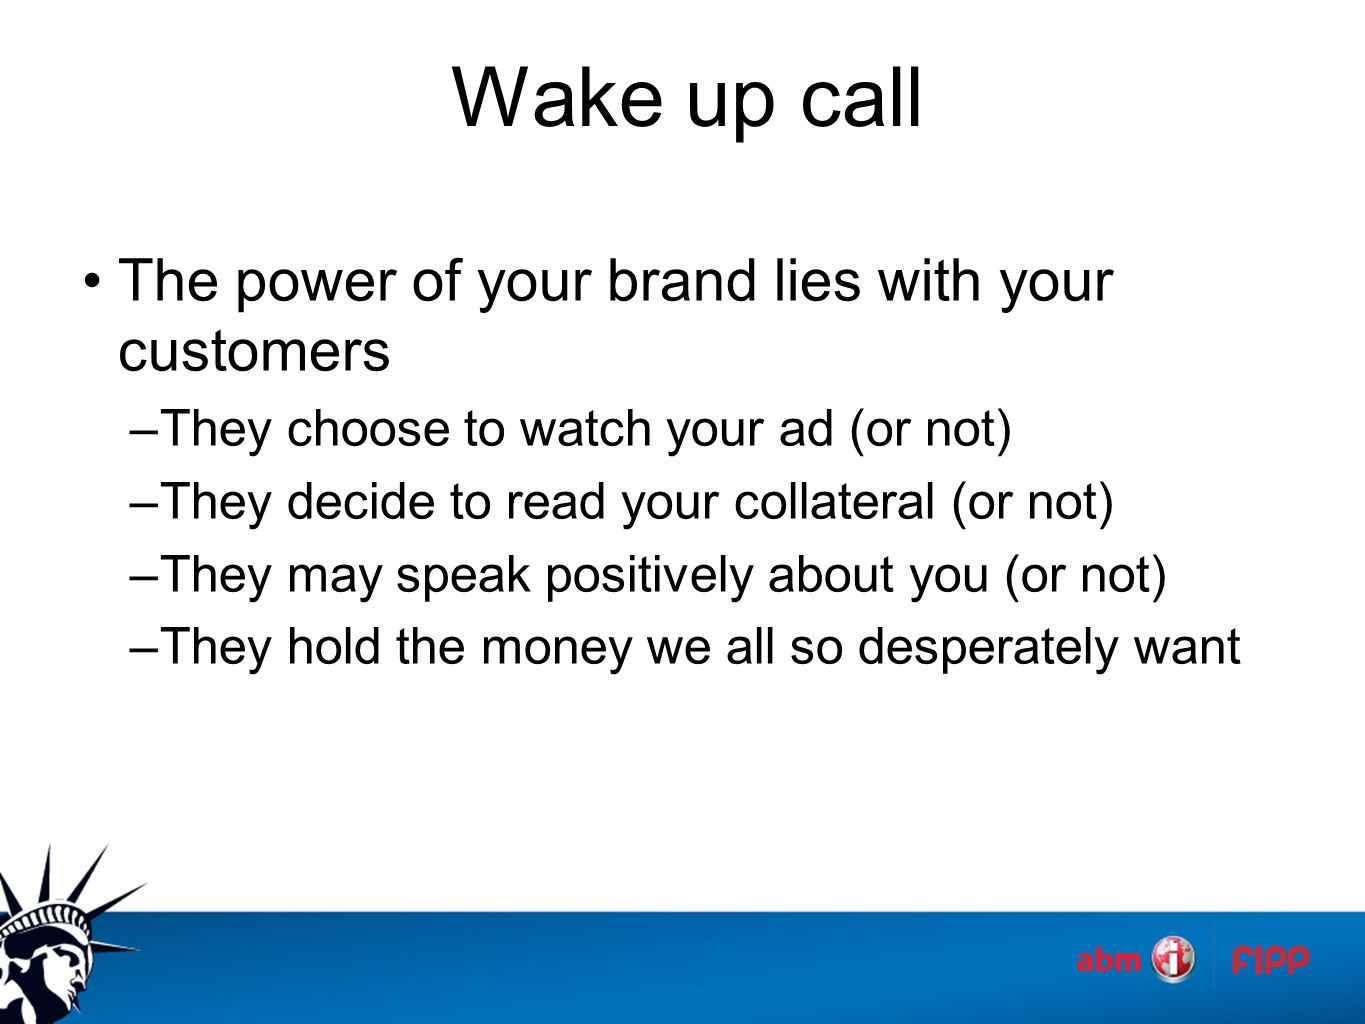 Wake up call The power of your brand lies with your customers –They choose to watch your ad (or not) –They decide to read your collateral (or not) –They may speak positively about you (or not) –They hold the money we all so desperately want